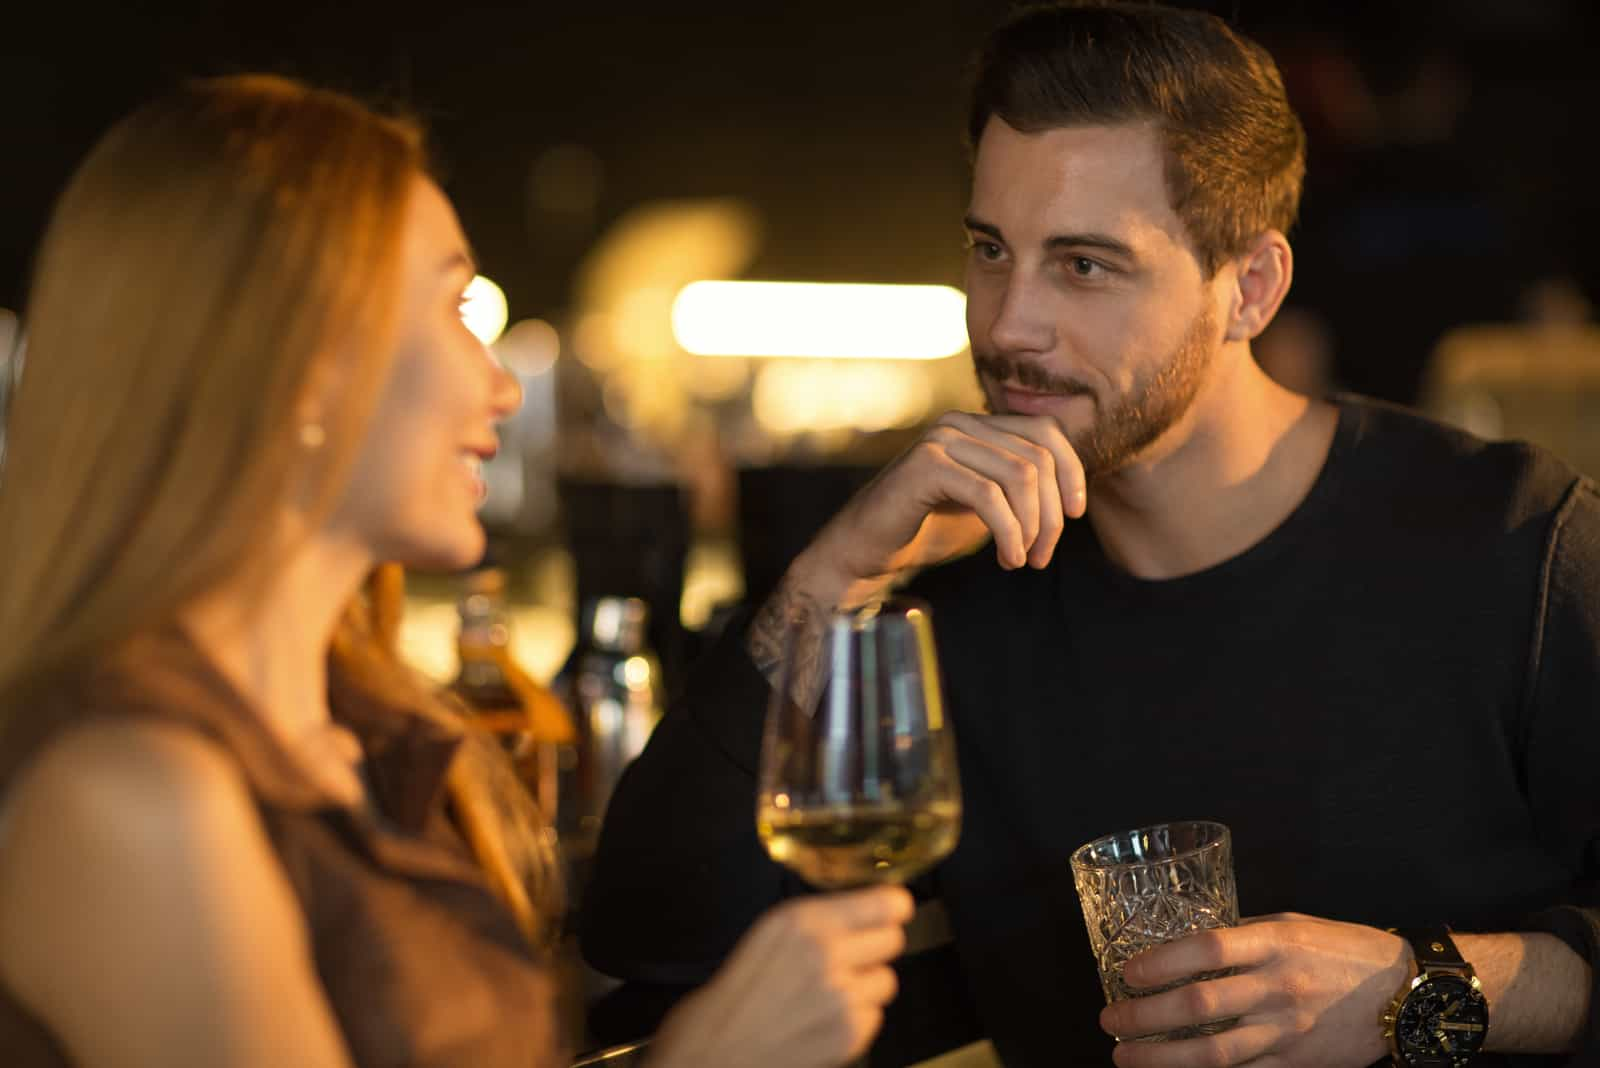 a man and a woman talking over wine